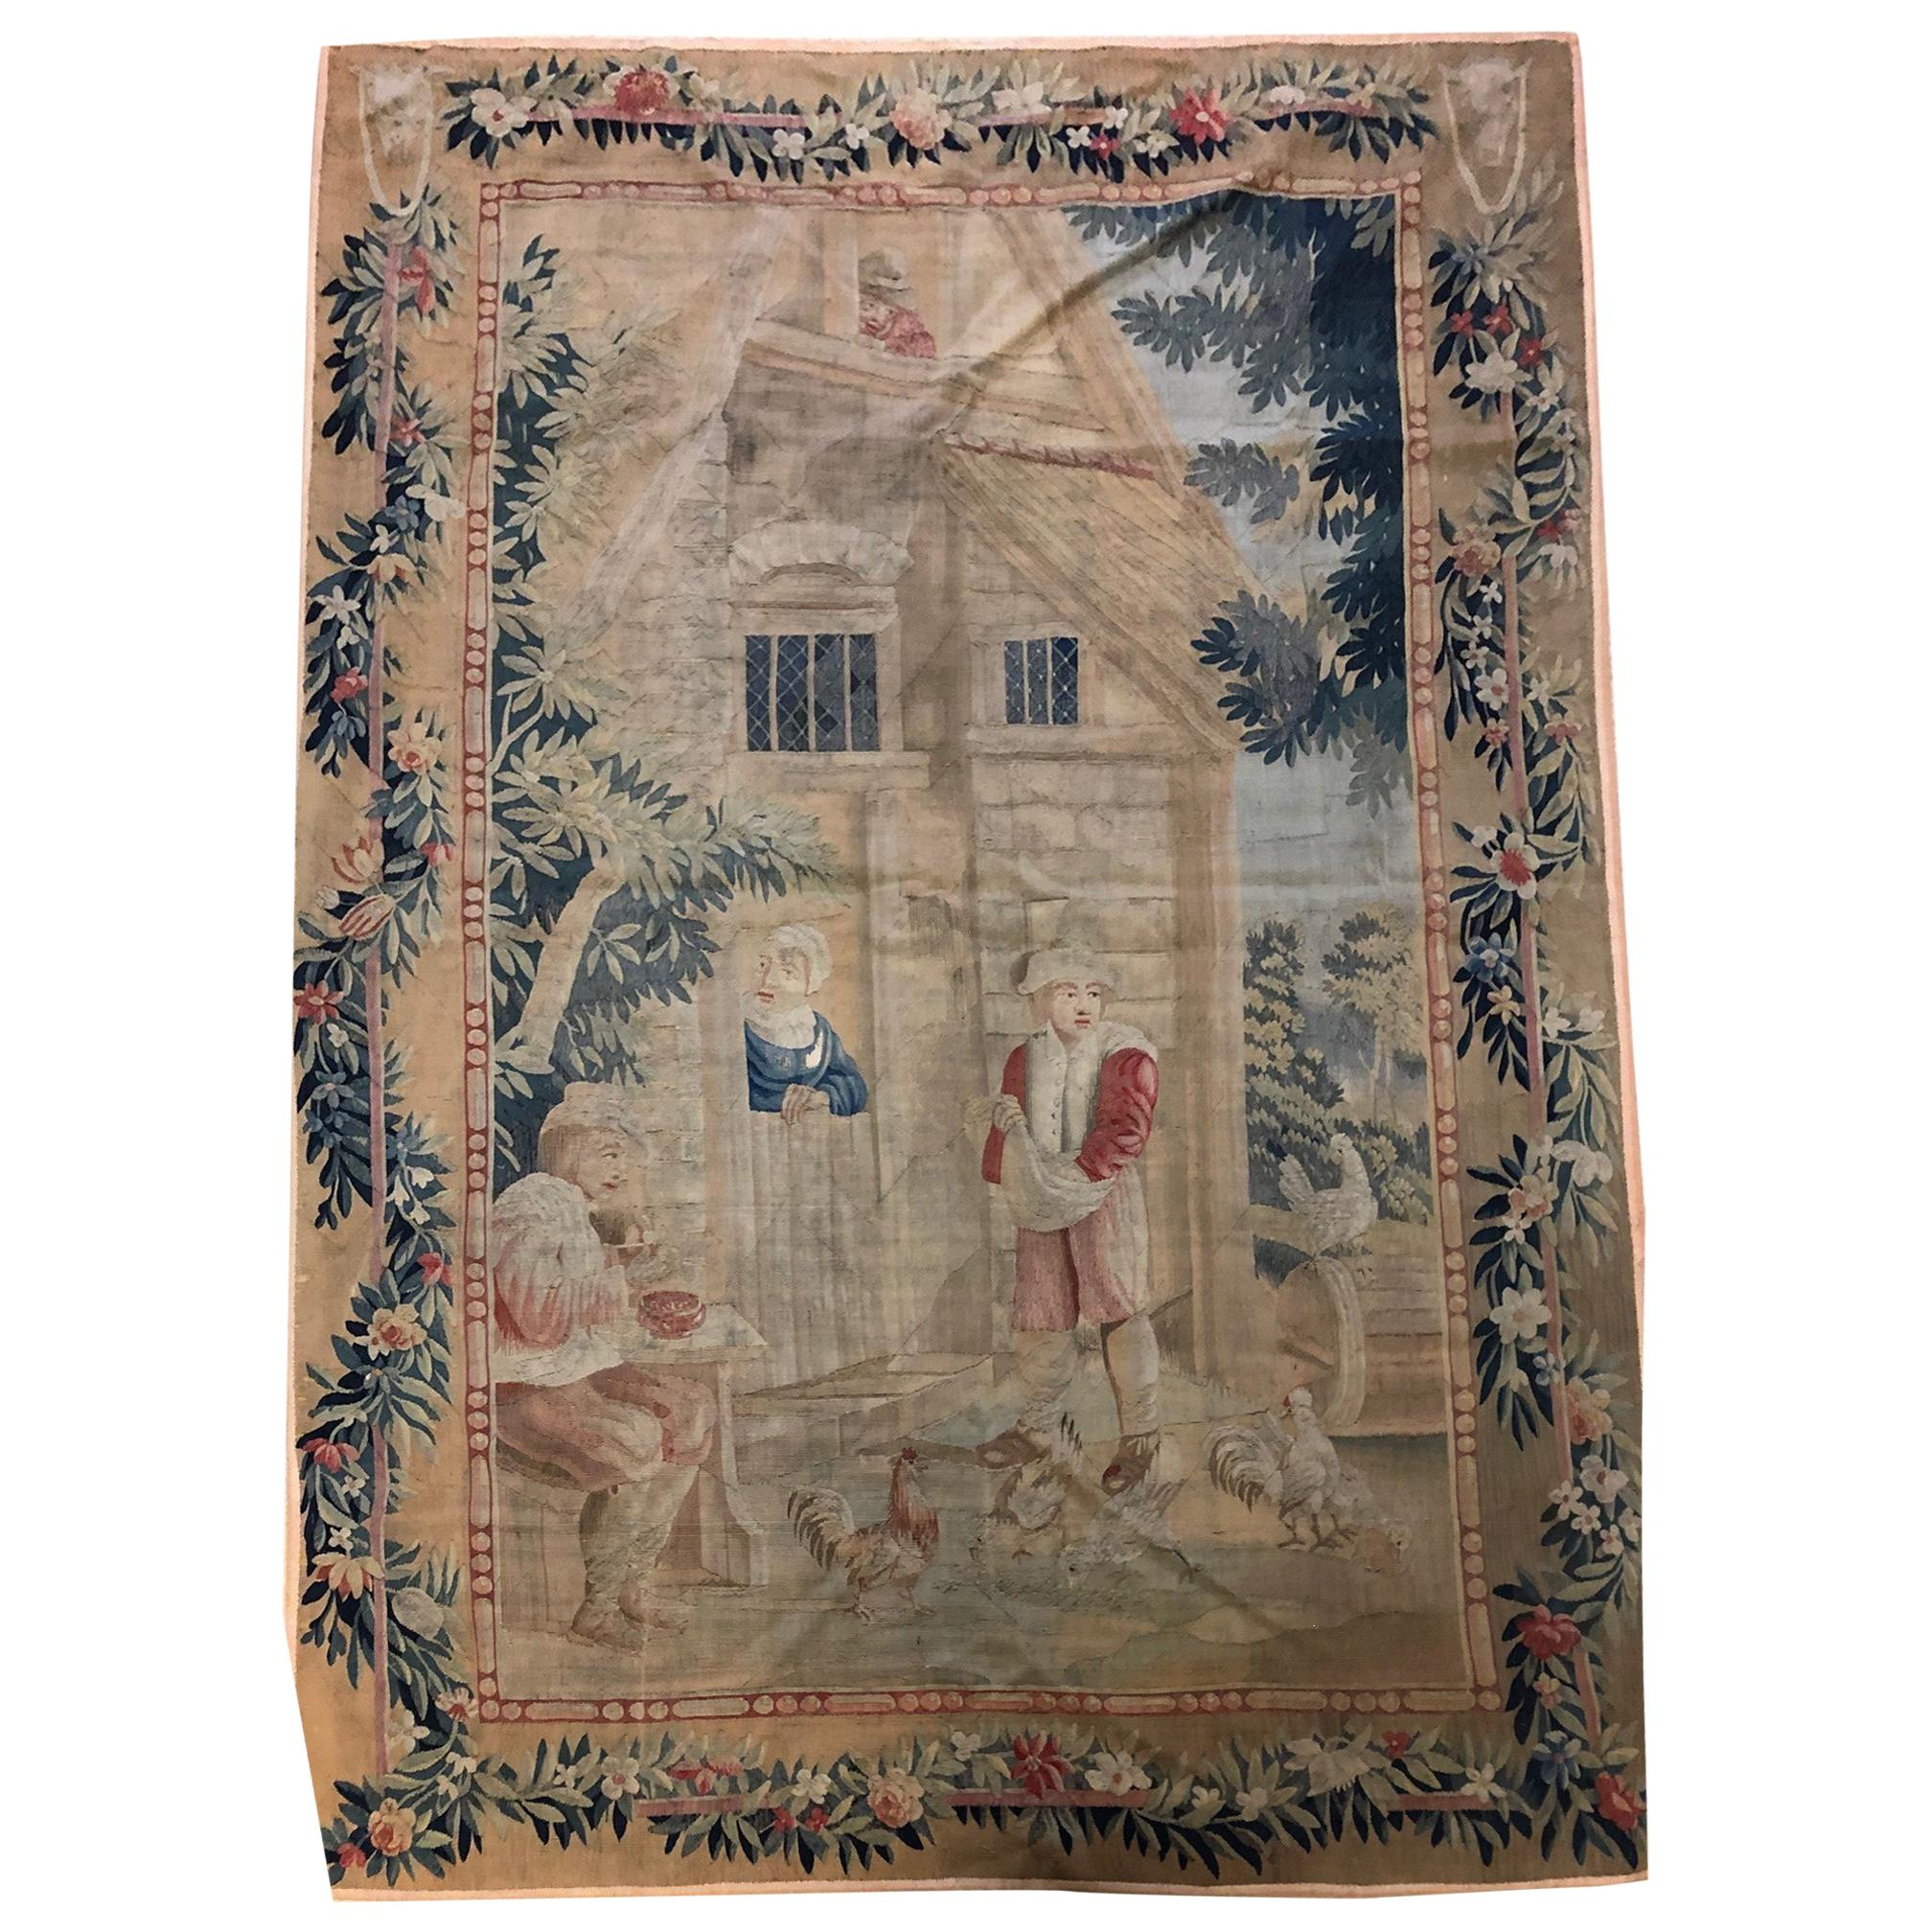 Flemish Tapestry 18th Century with Complete Border